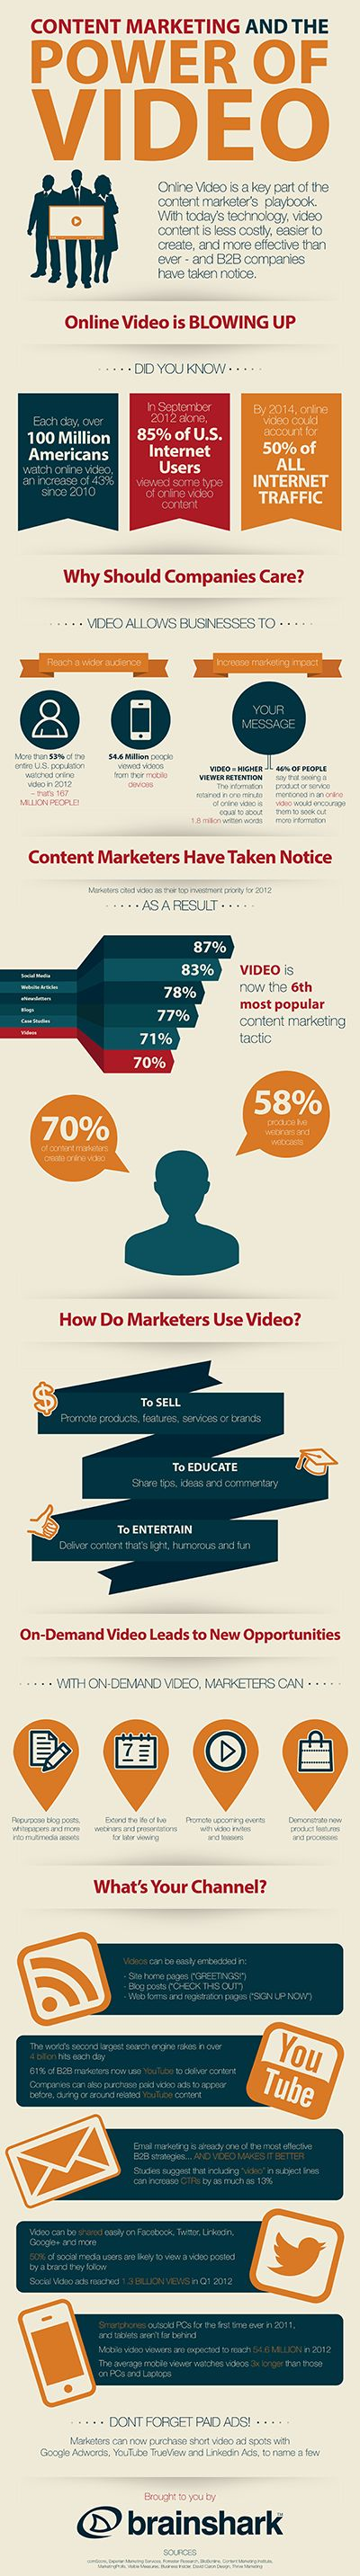 #ContentMarketing and the Power of #Video